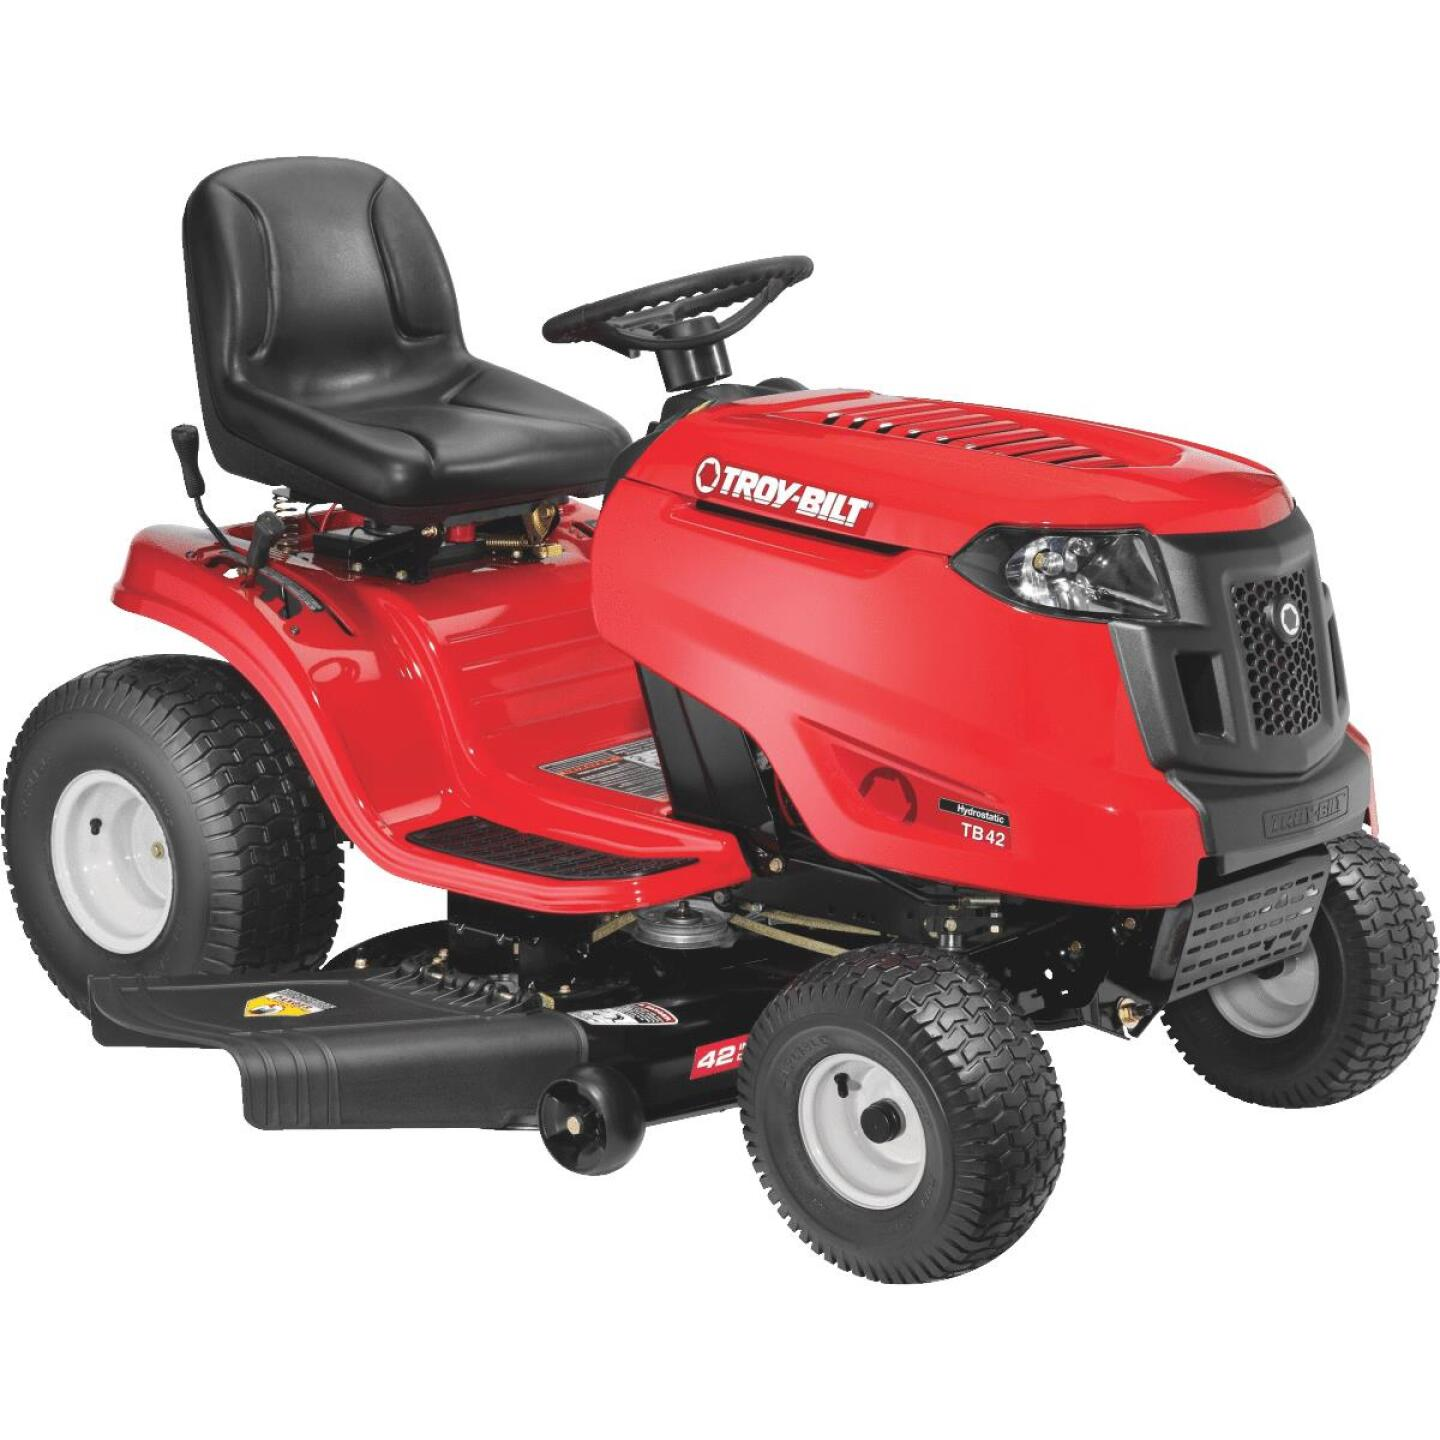 Troy-Bilt 42 In. 547cc Troy-Bilt Single Cylinder Automatic Lawn Tractor Image 1